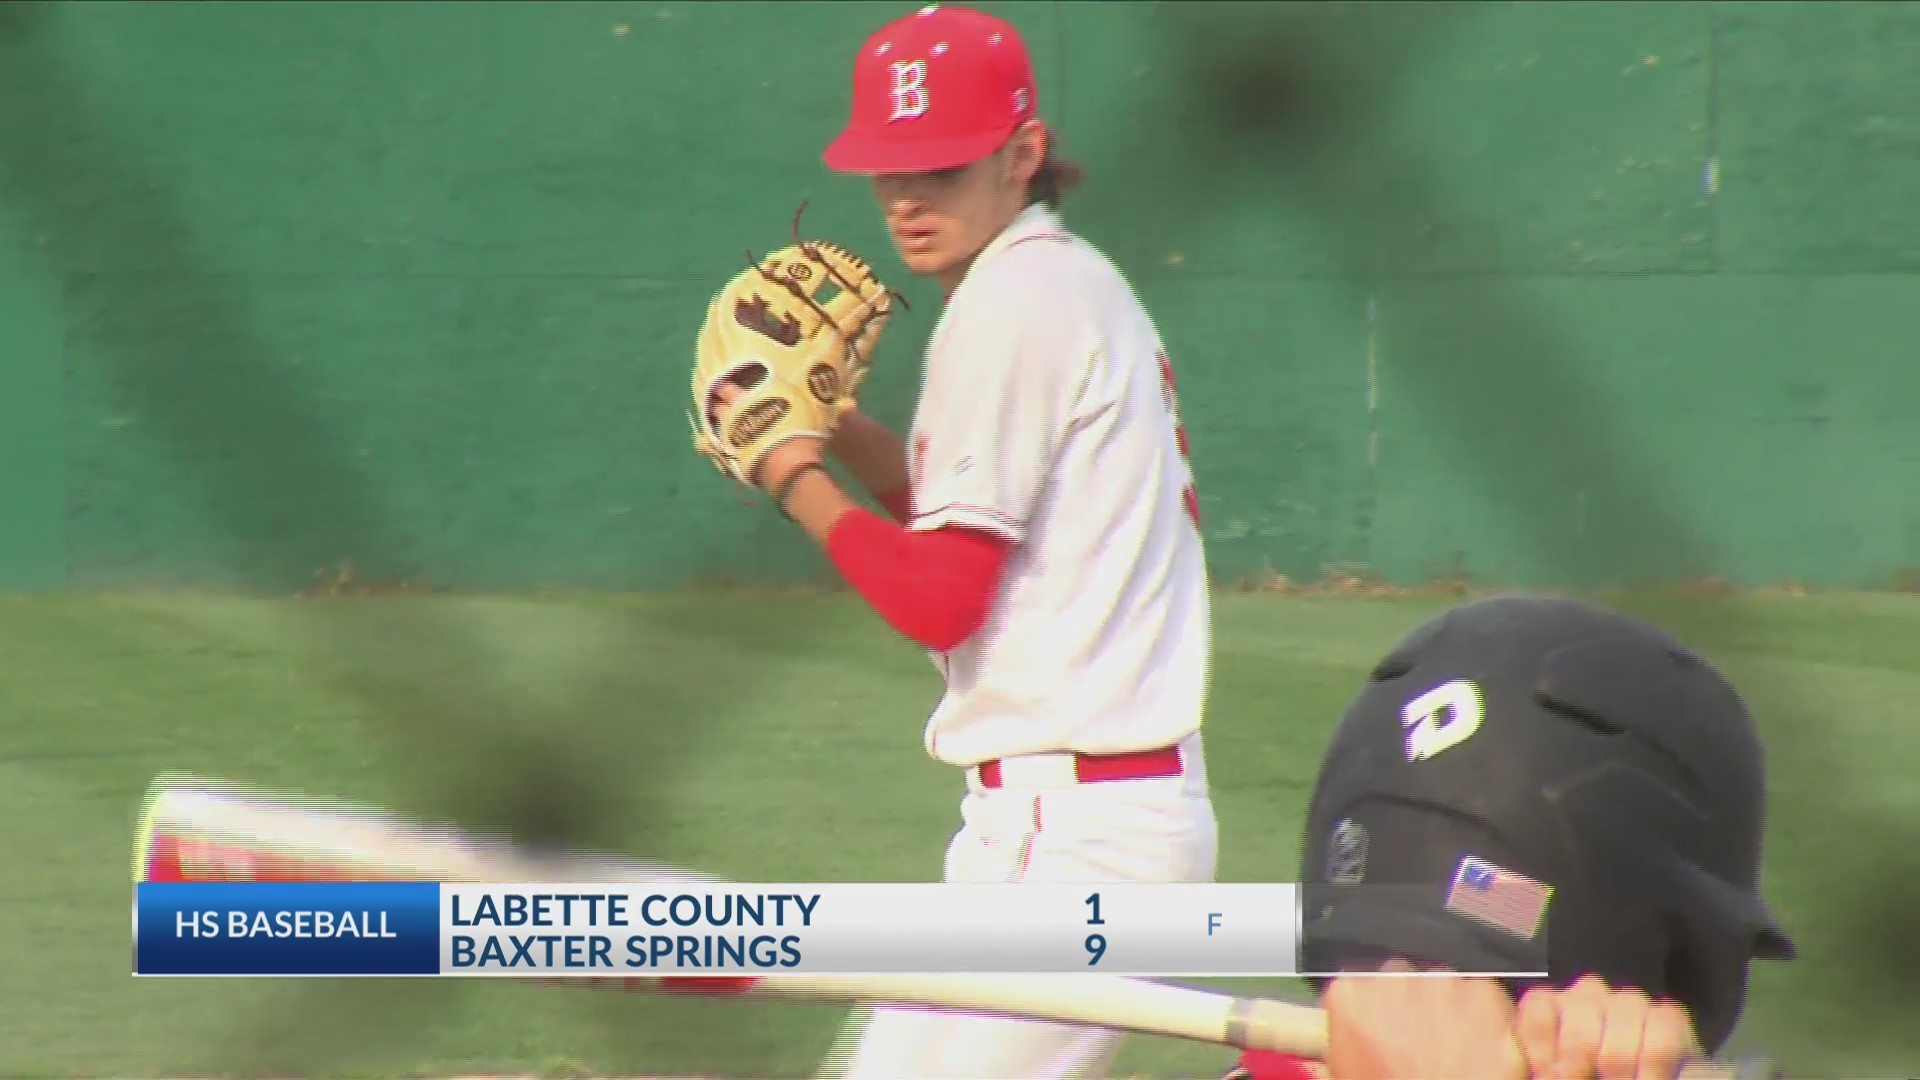 Baxter_Springs_tops_Labette_County_0_20190329041109